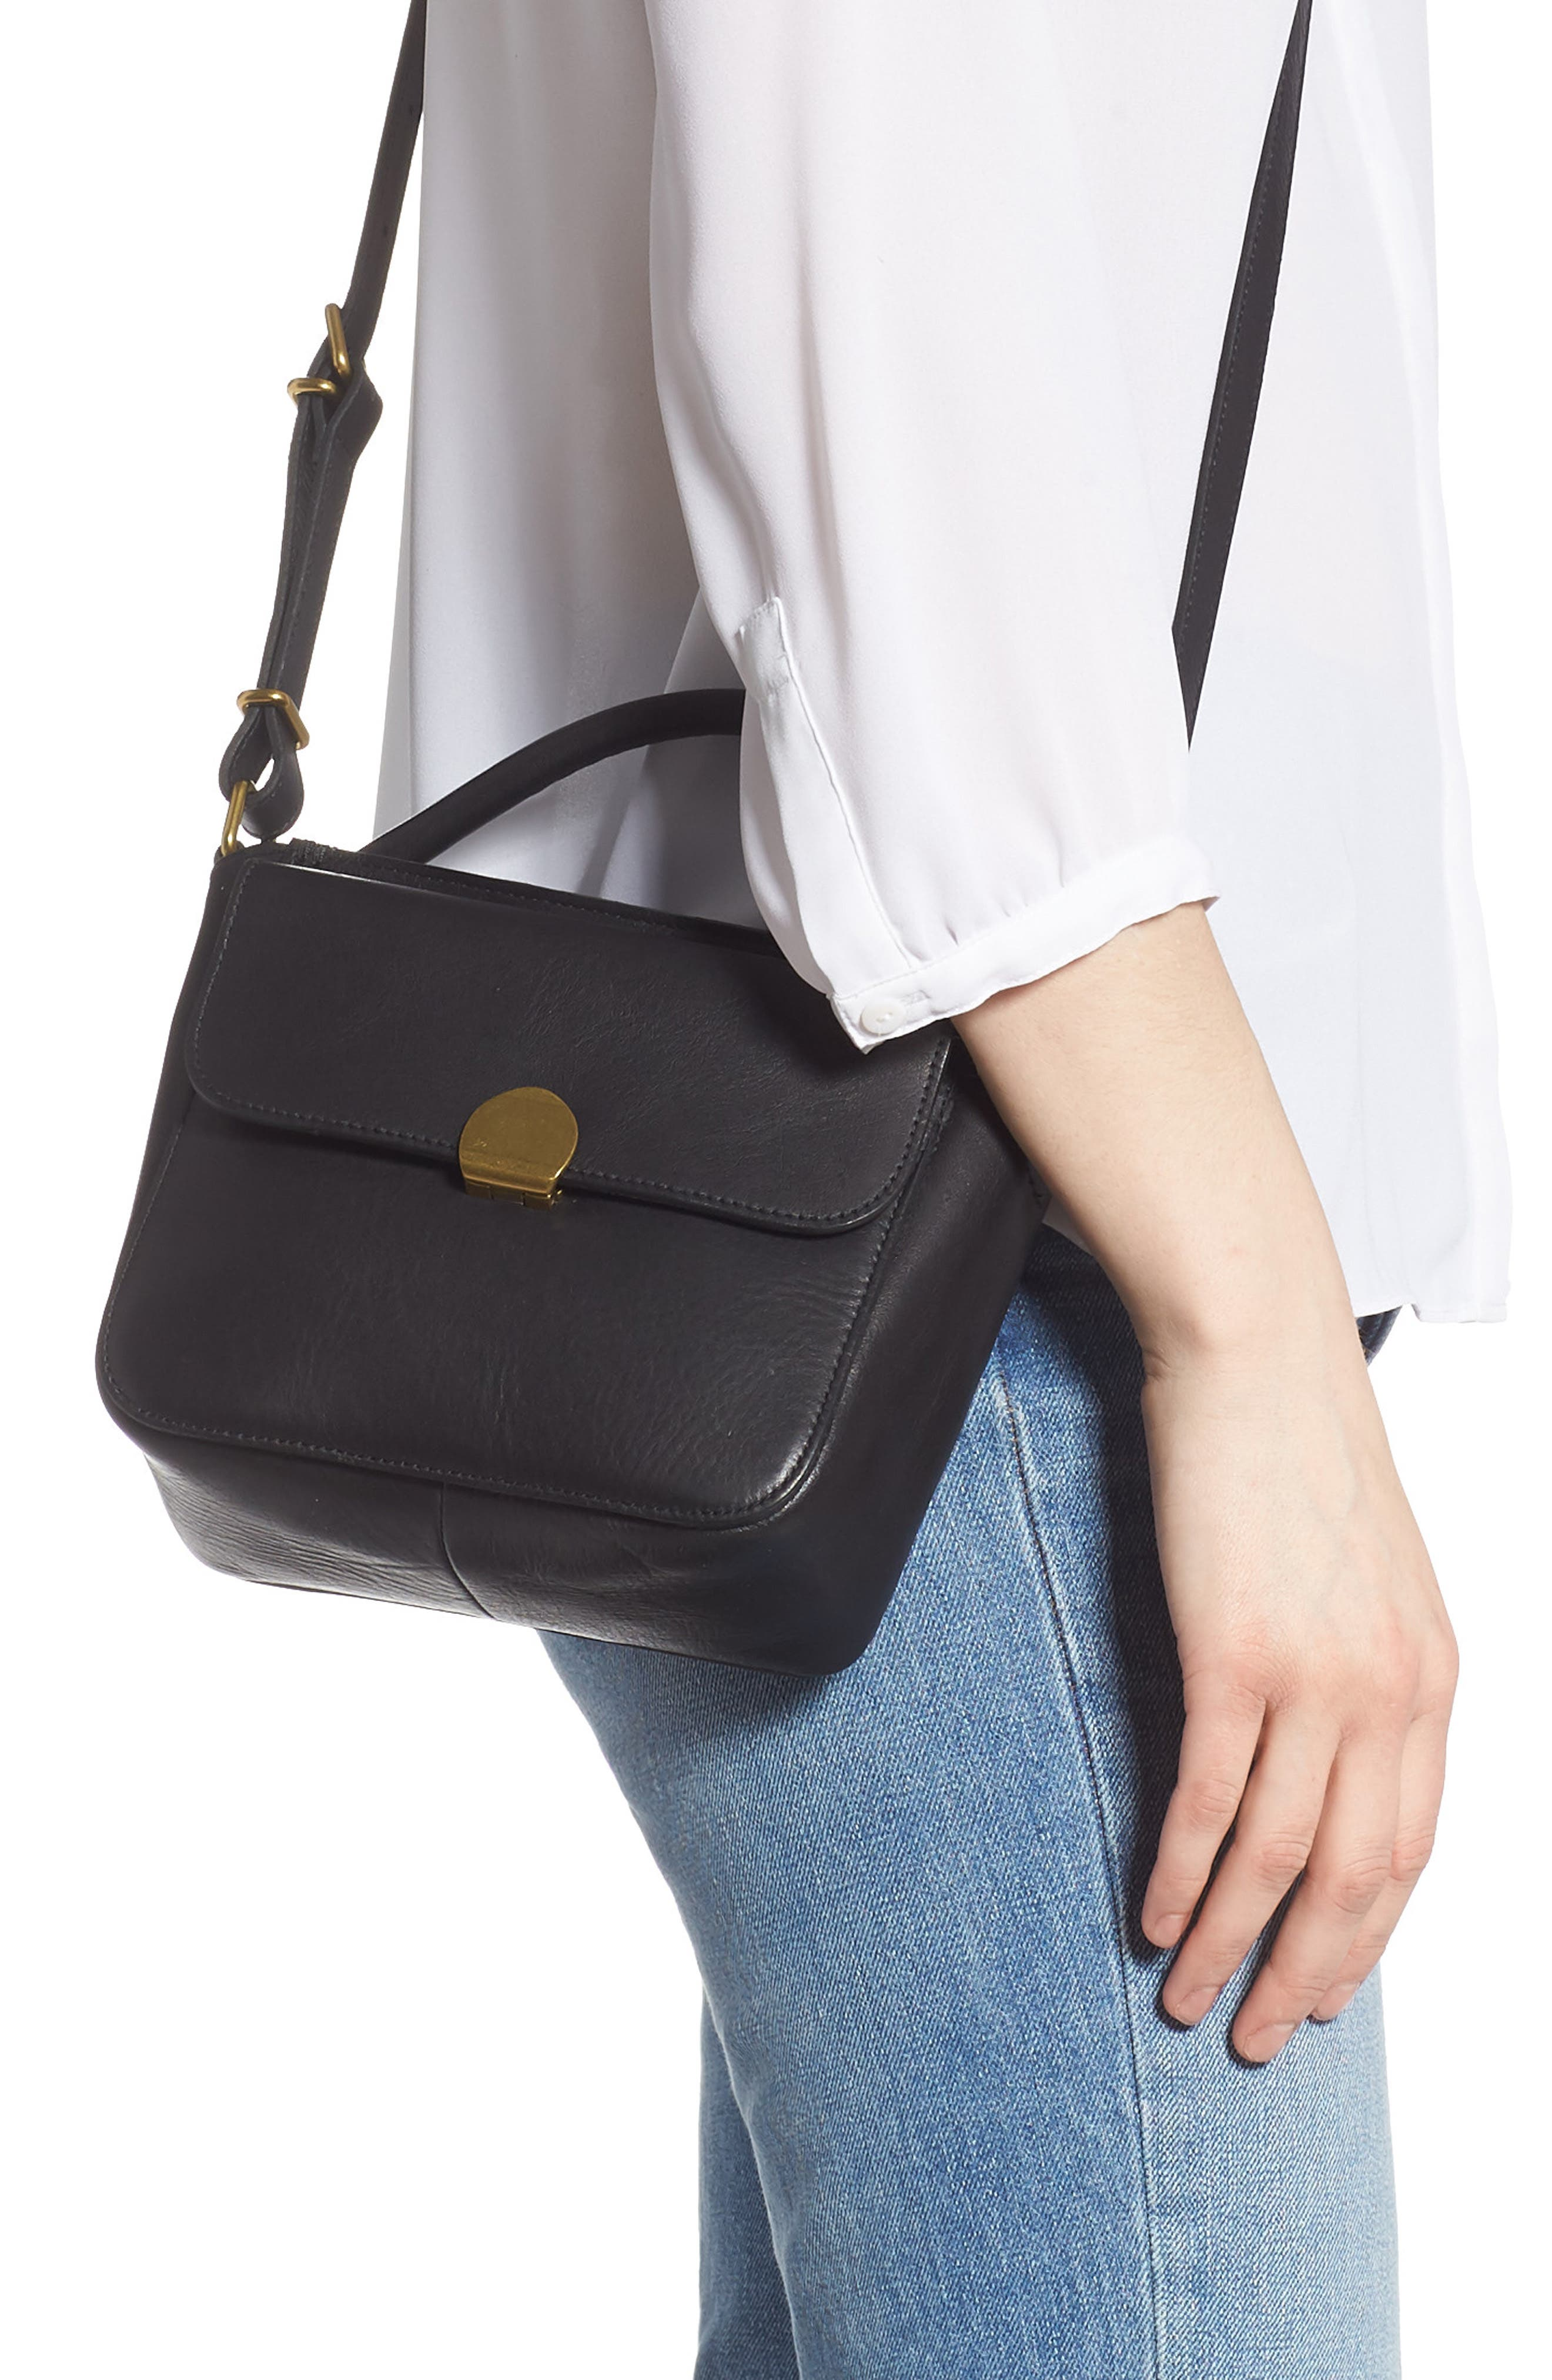 MADEWELL, The Mini Abroad Leather Crossbody Bag, Alternate thumbnail 2, color, TRUE BLACK